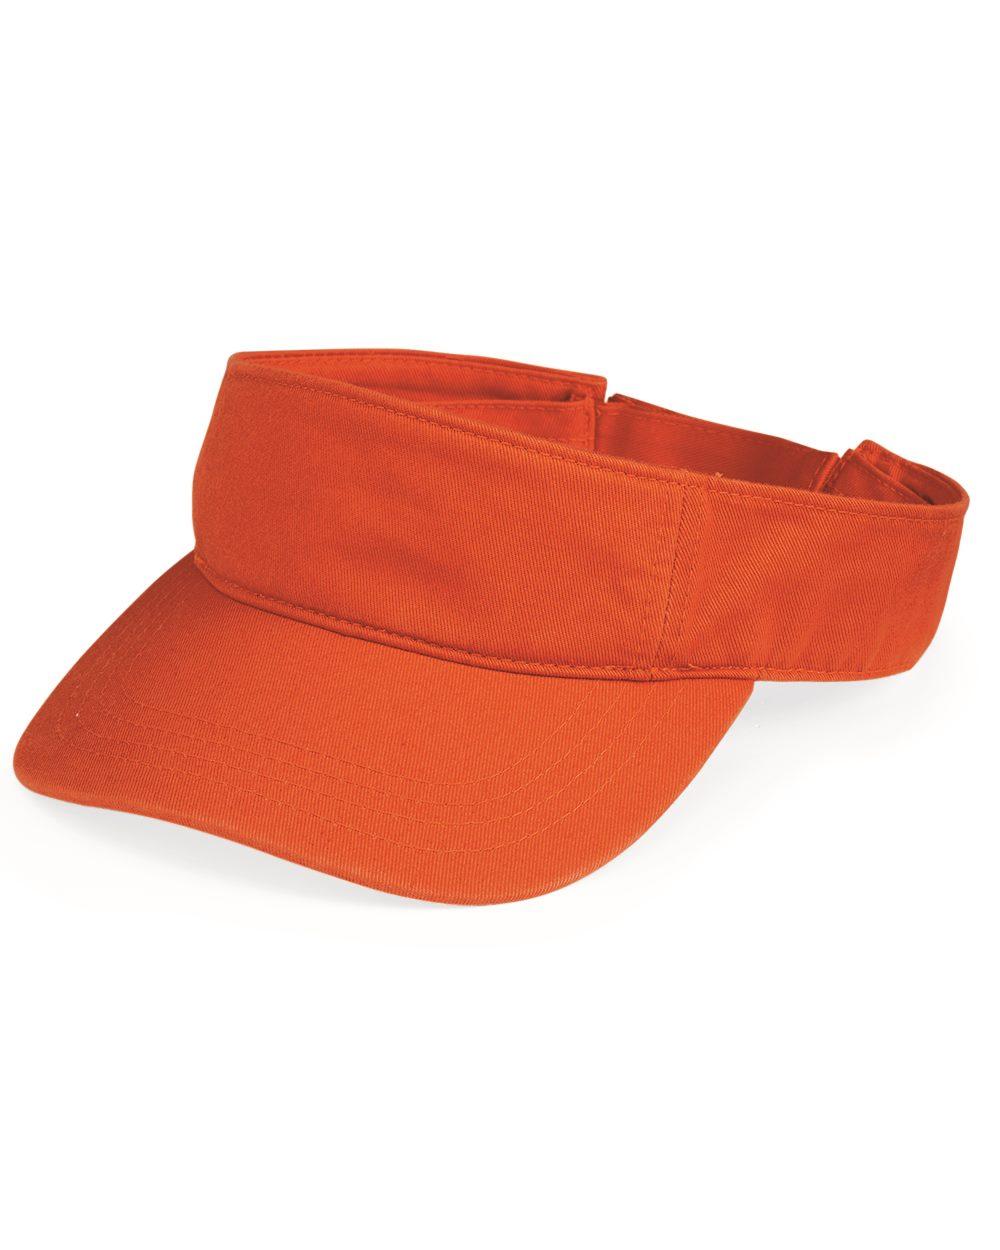 Valucap VC500 - Bio-Washed Visor